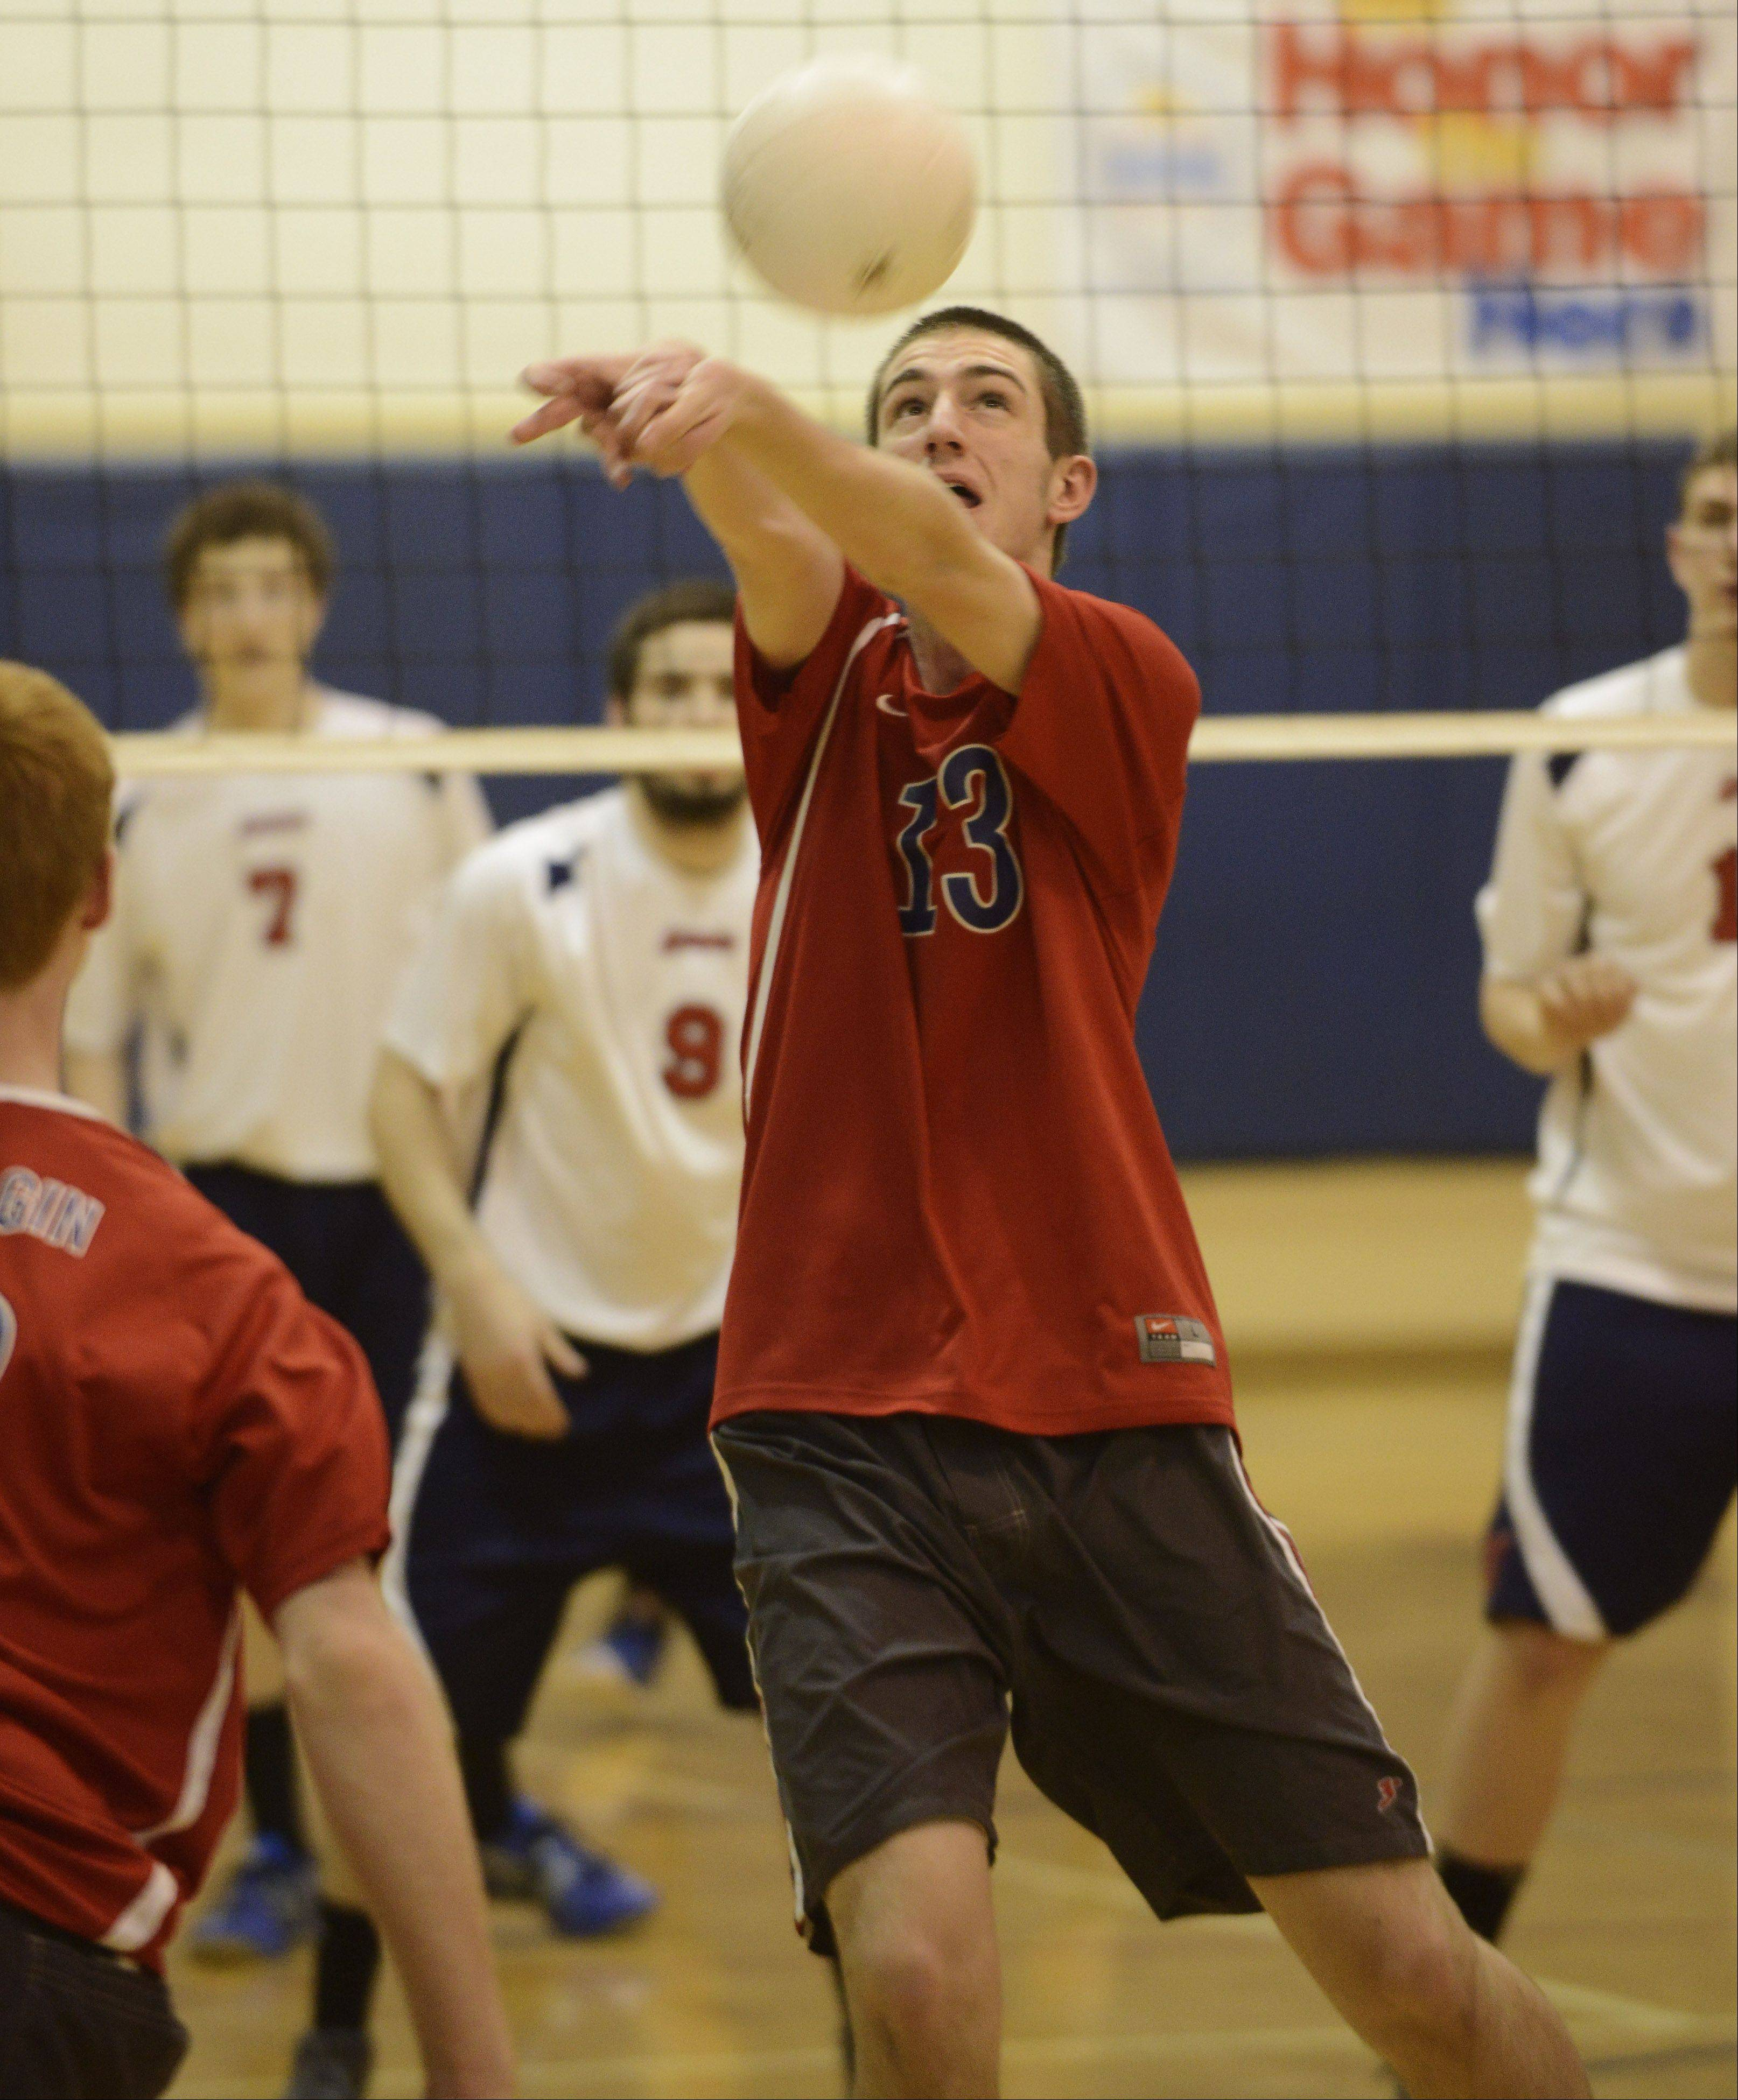 South Elgin's Ian Saxton hustles to keep the ball in play during Wednesday's match against St. Viator.